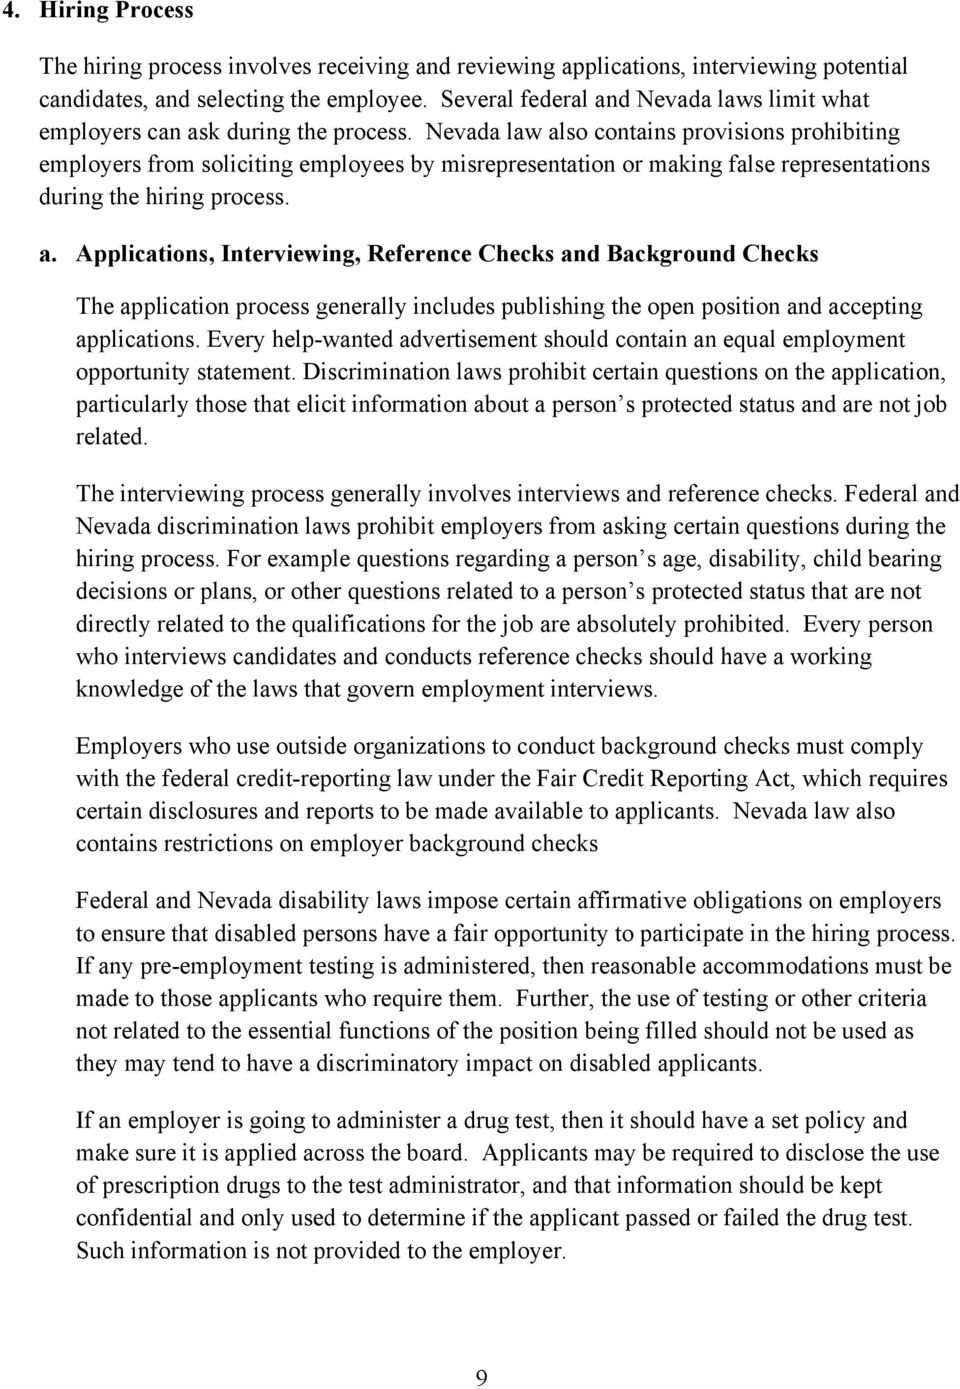 Nevada law also contains provisions prohibiting employers from soliciting employees by misrepresentation or making false representations during the hiring process. a. Applications, Interviewing, Reference Checks and Background Checks The application process generally includes publishing the open position and accepting applications.